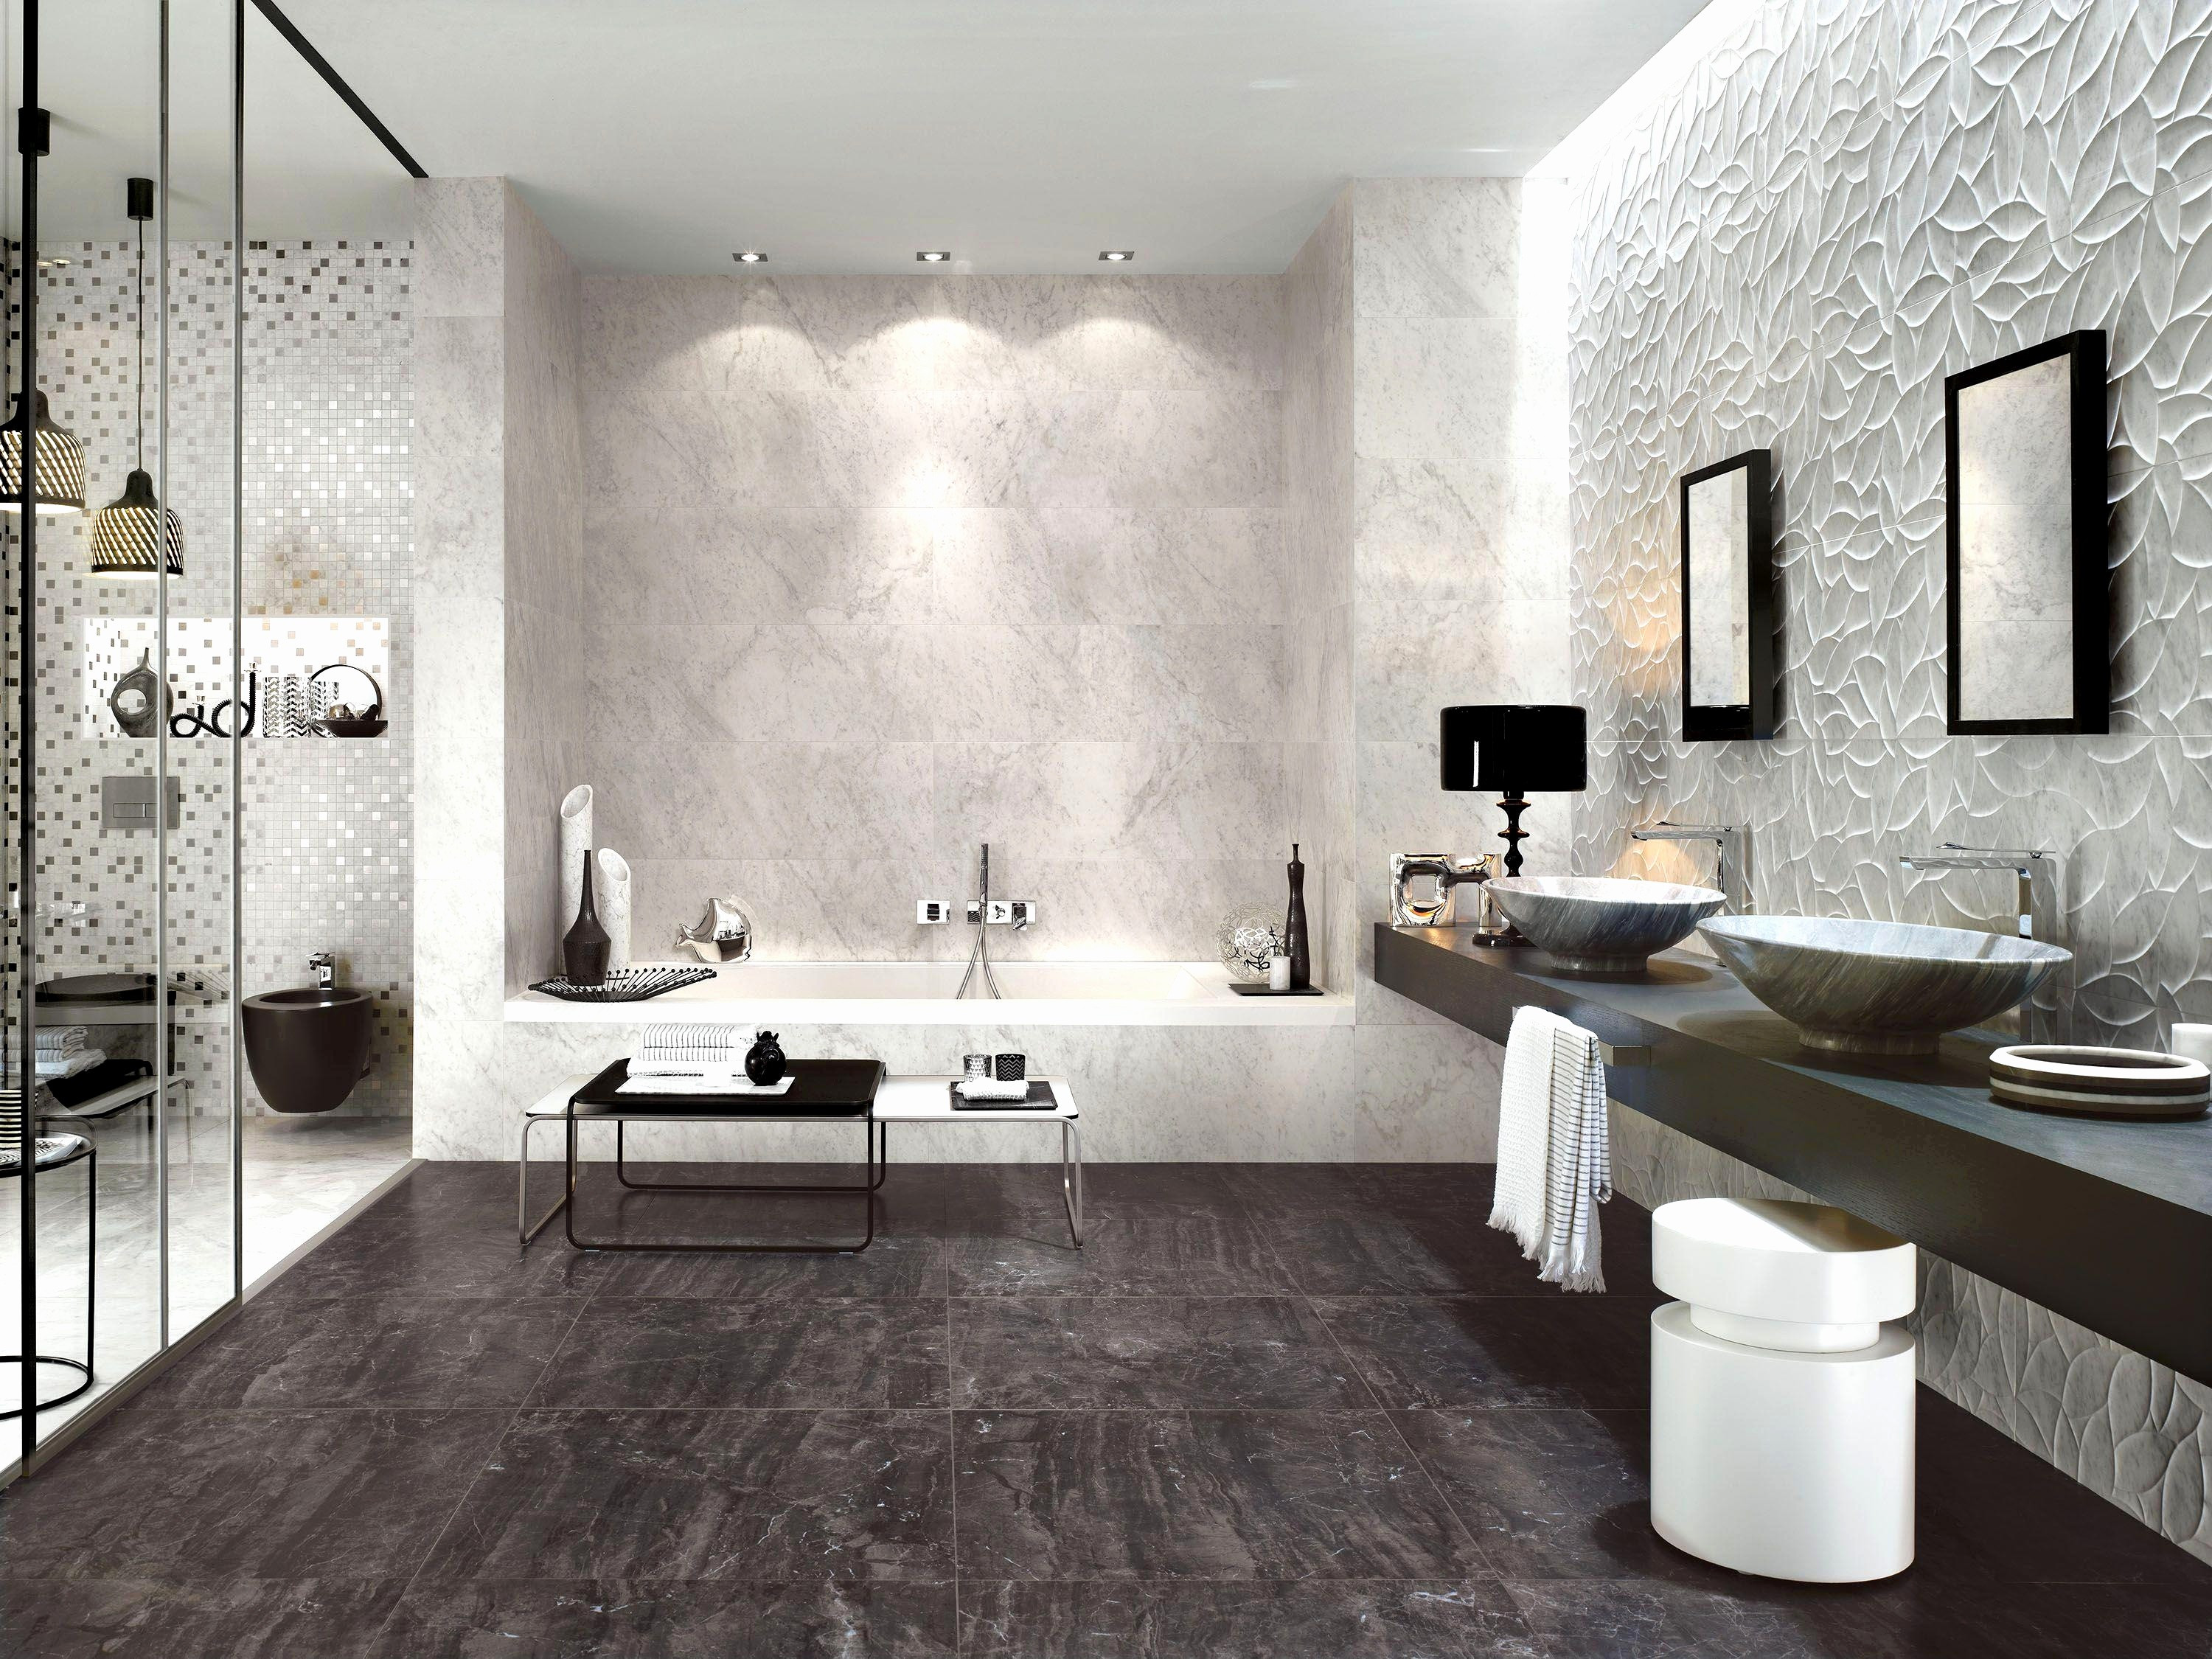 hardwood floors and grey walls of awesome best broom for dog hair on hardwood floors 332ndf org inside gallery unique bathroom tiling ideas best h sink install bathroom i 0d exciting 50 lovely hardwood